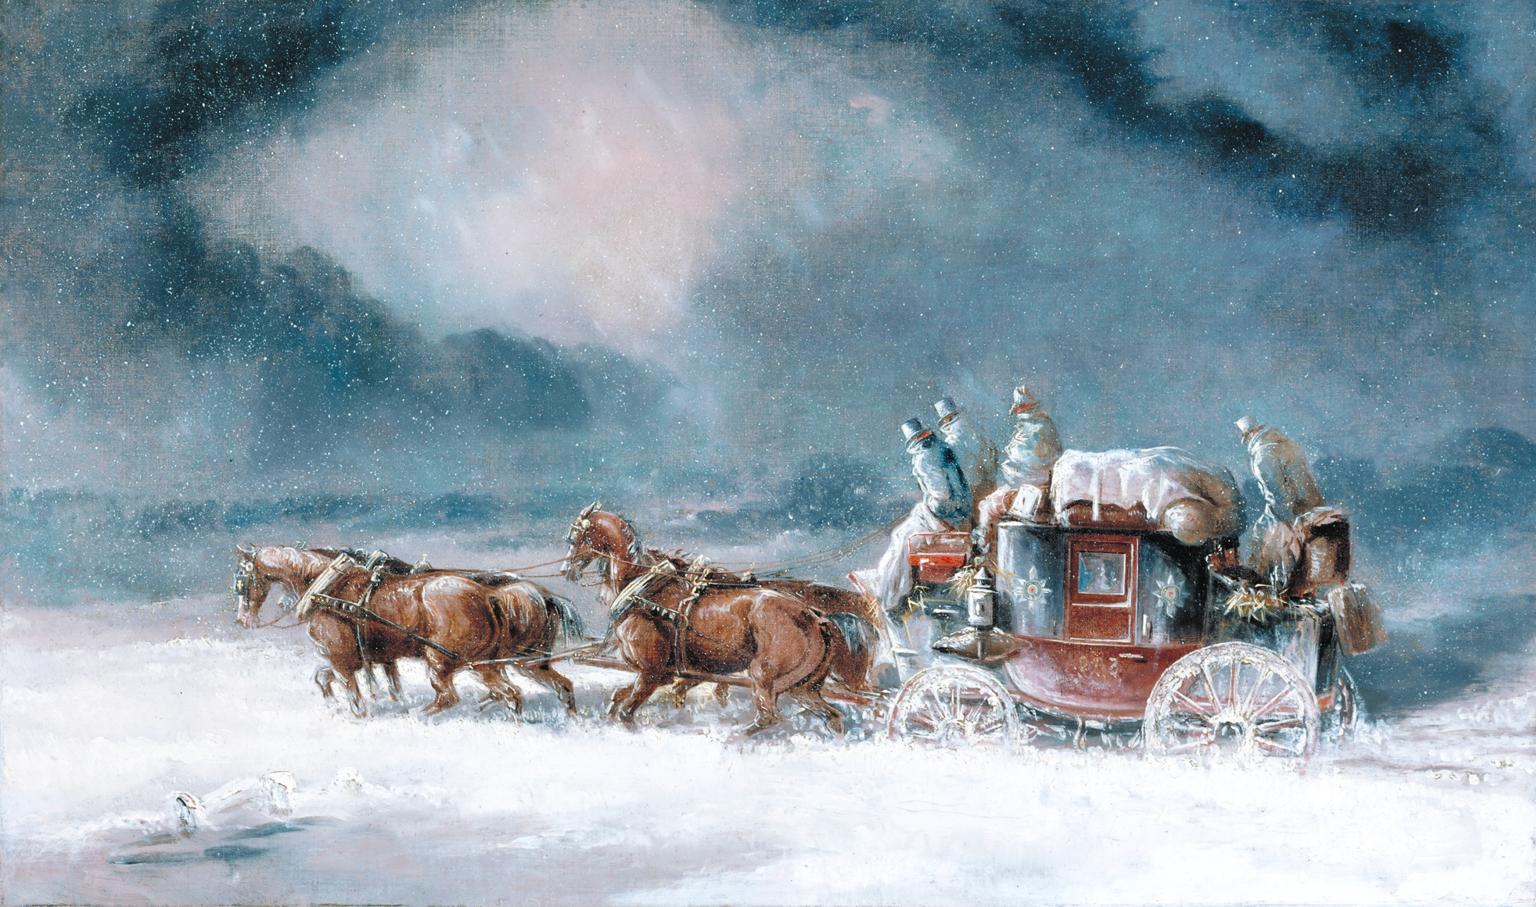 Mail Coach in a Snowstorm c.1835-40 by Charles Cooper Henderson 1803-1877